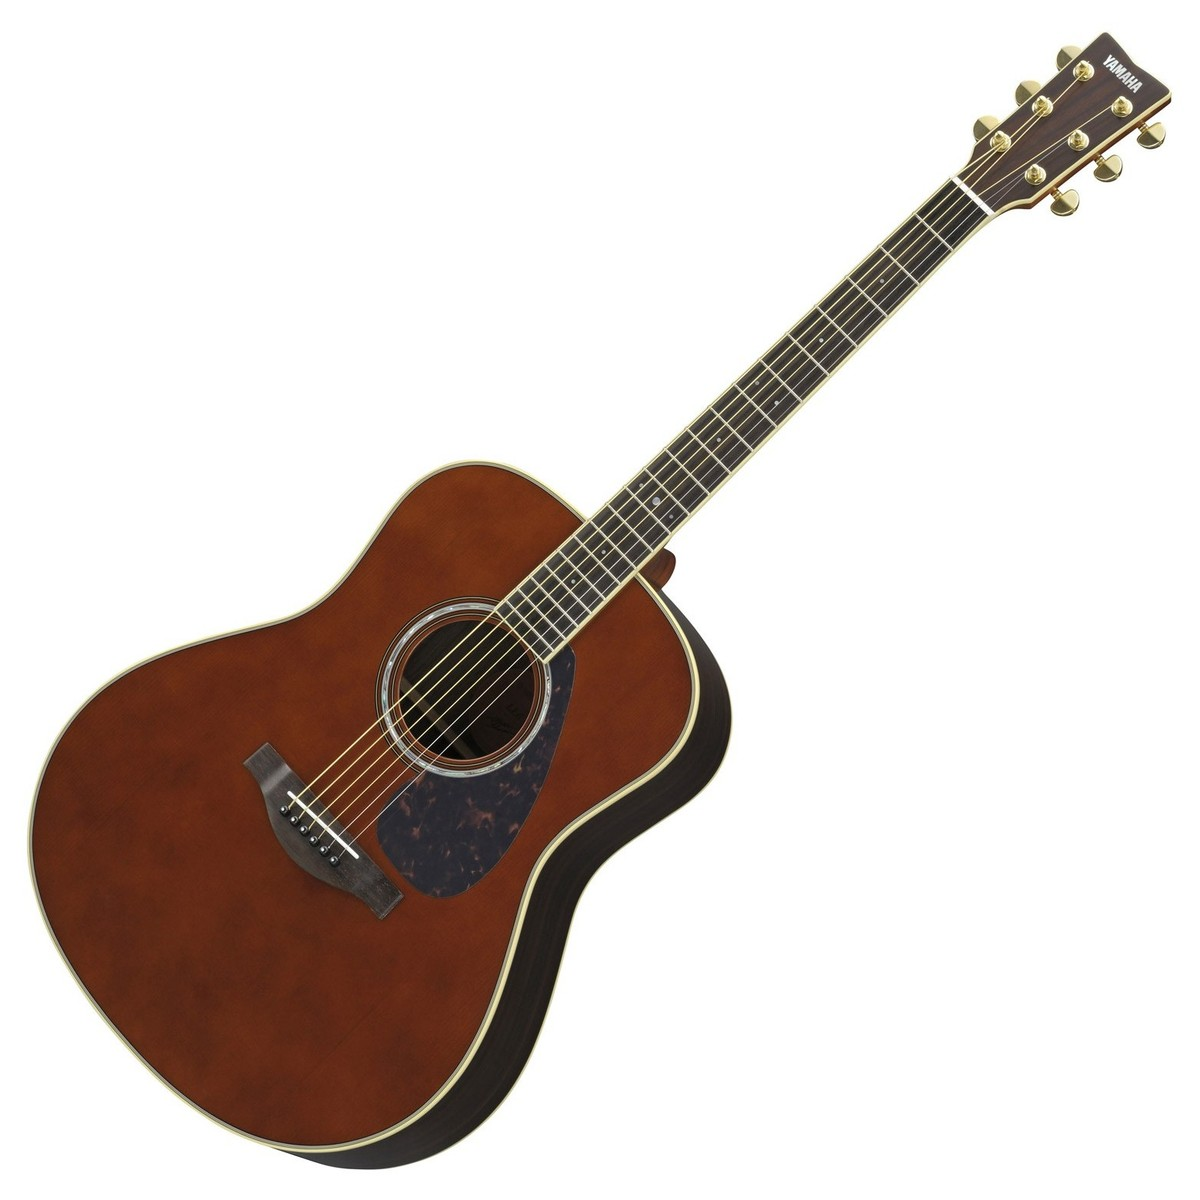 Yamaha LL16 western guitar - brown